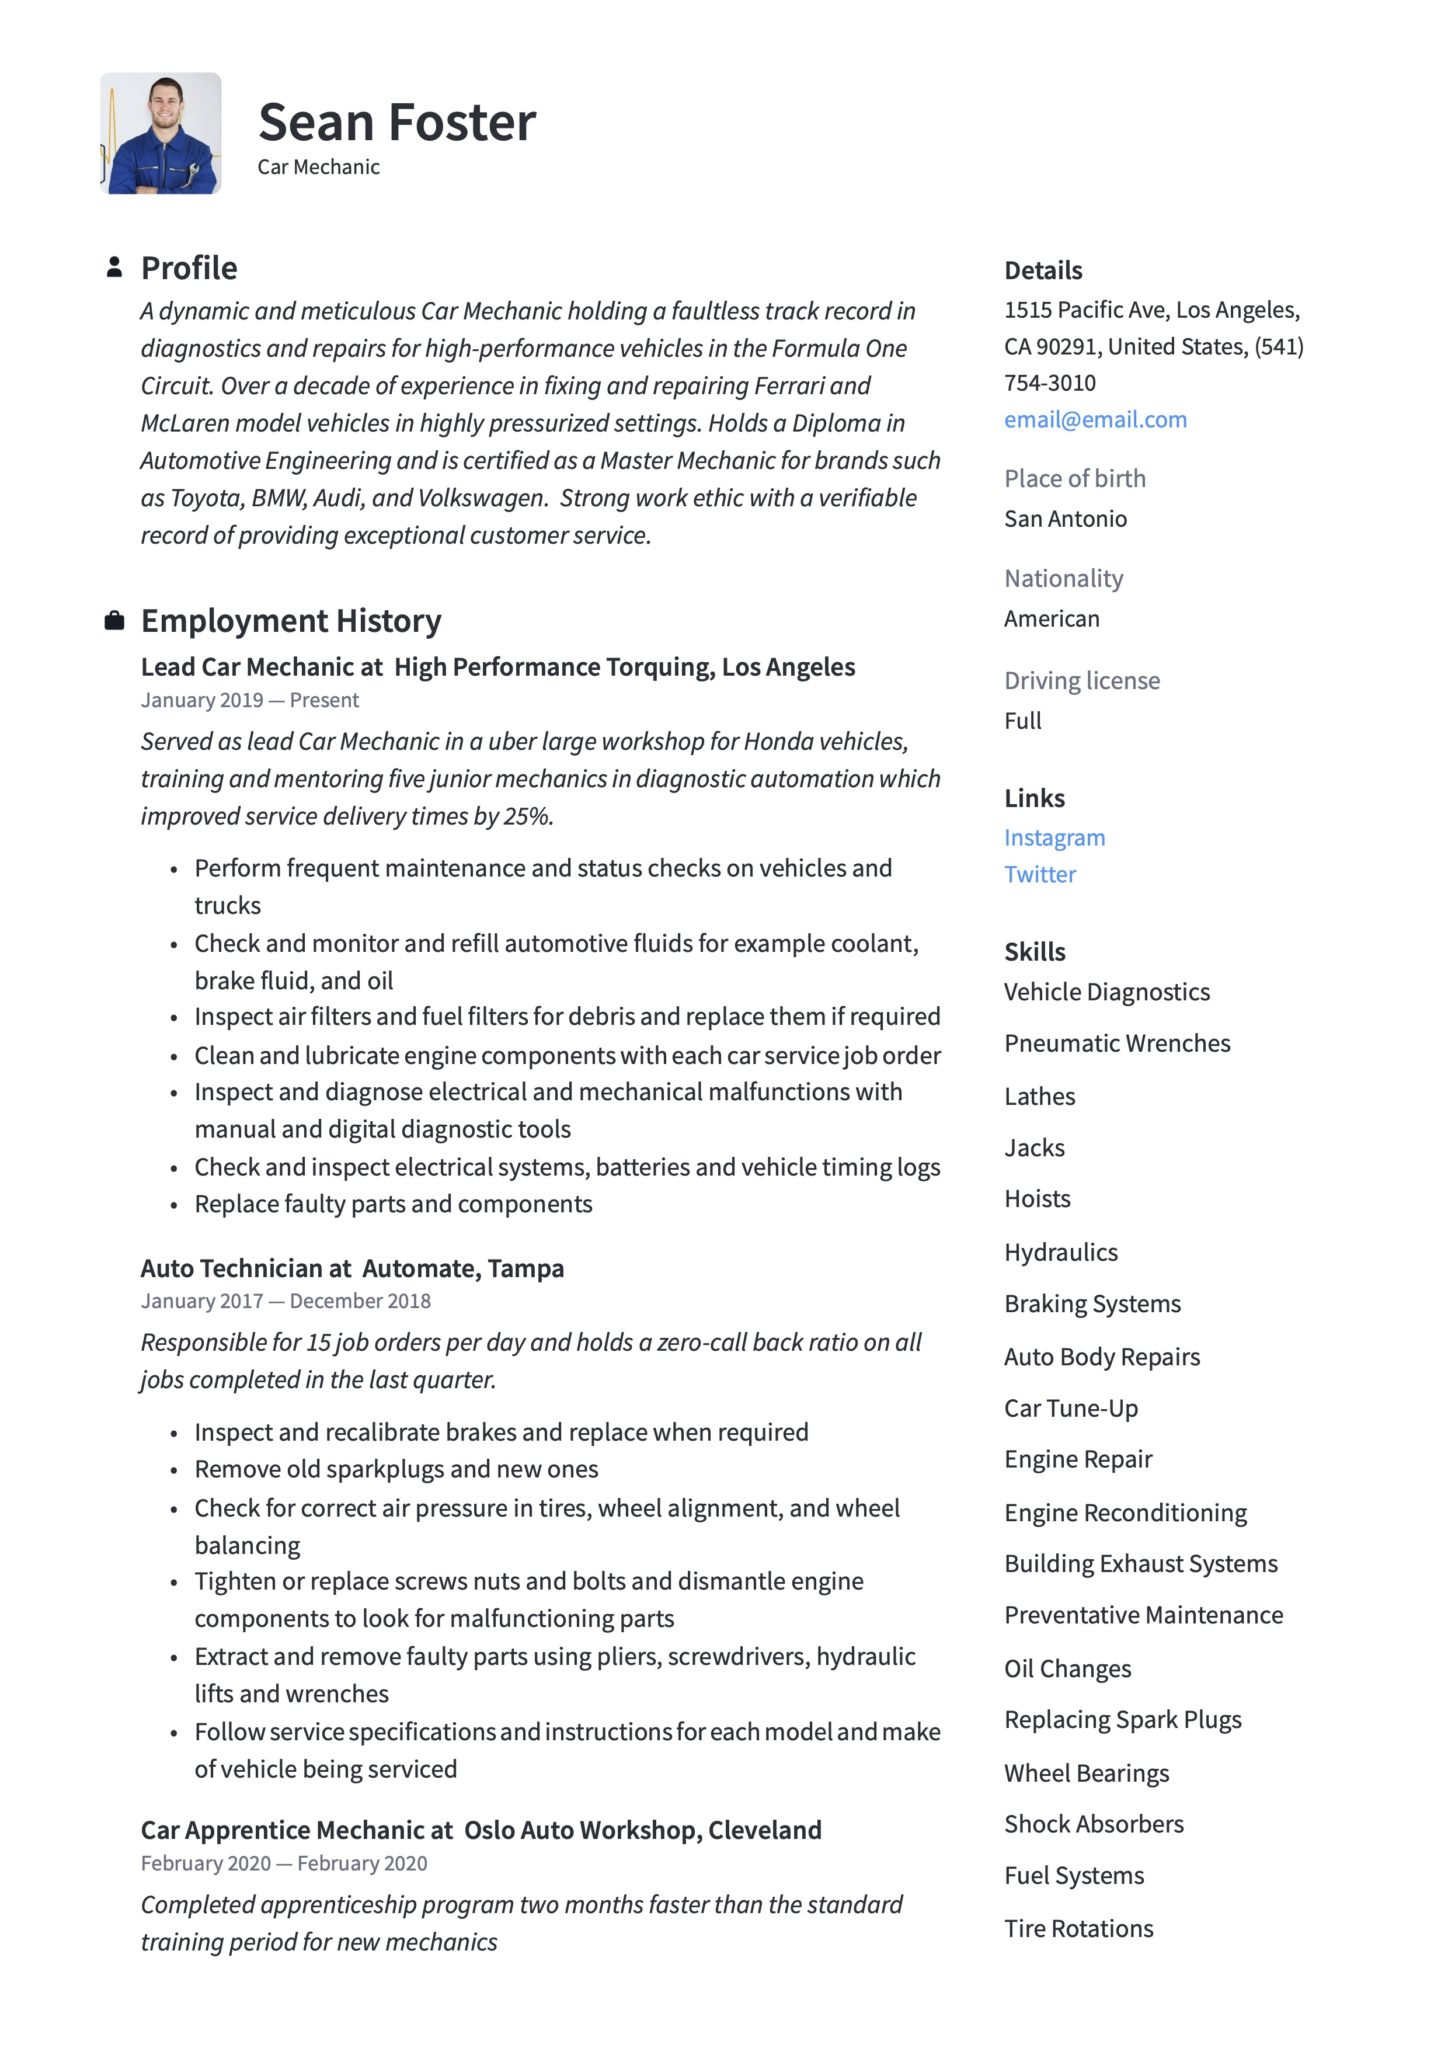 car mechanic resume guide examples auto body objective scaled mental health counselor Resume Auto Body Resume Objective Examples